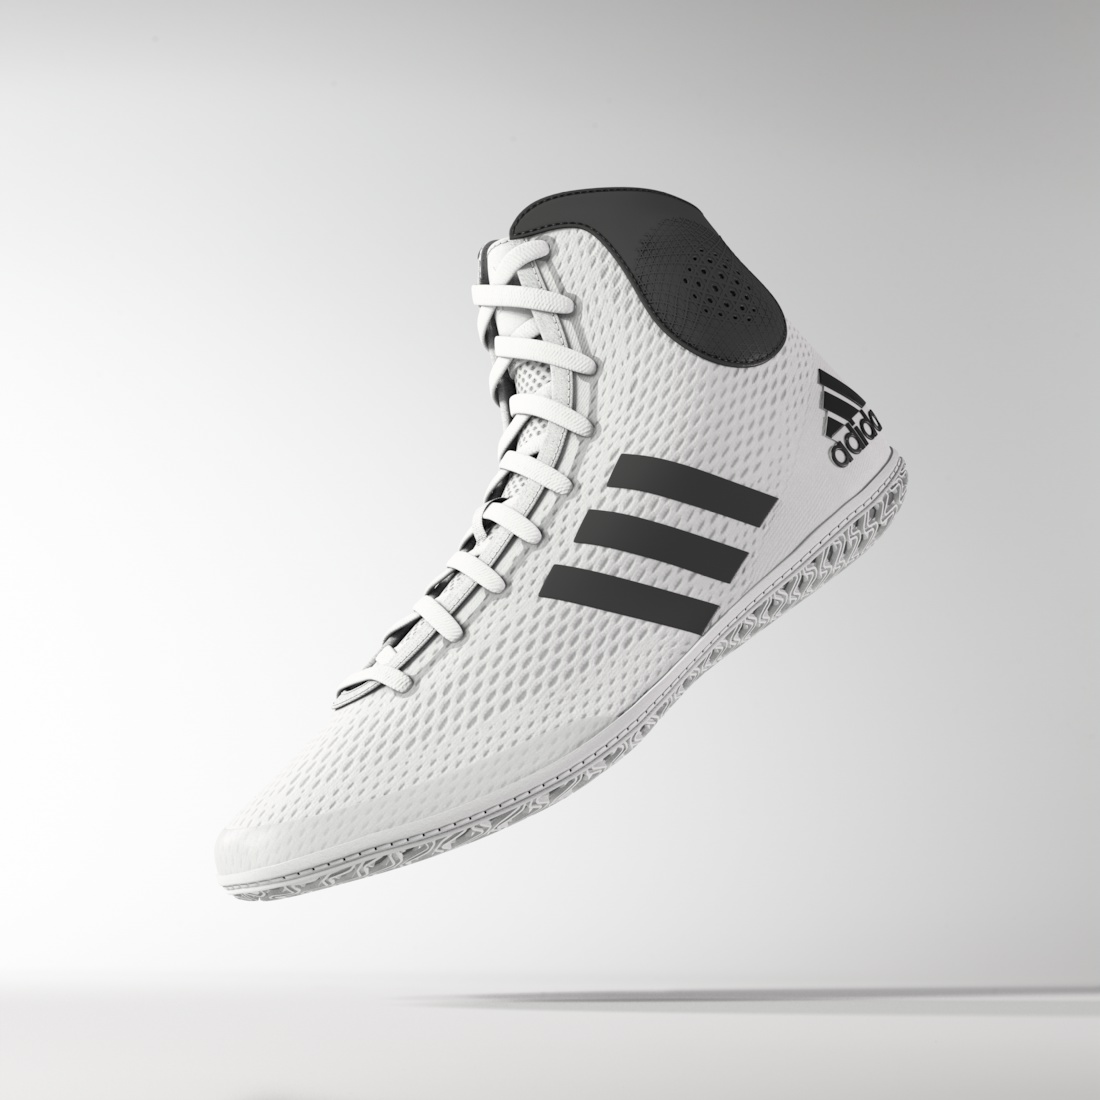 adidas Tech Fall™ Wrestling Shoes, color: White/Black